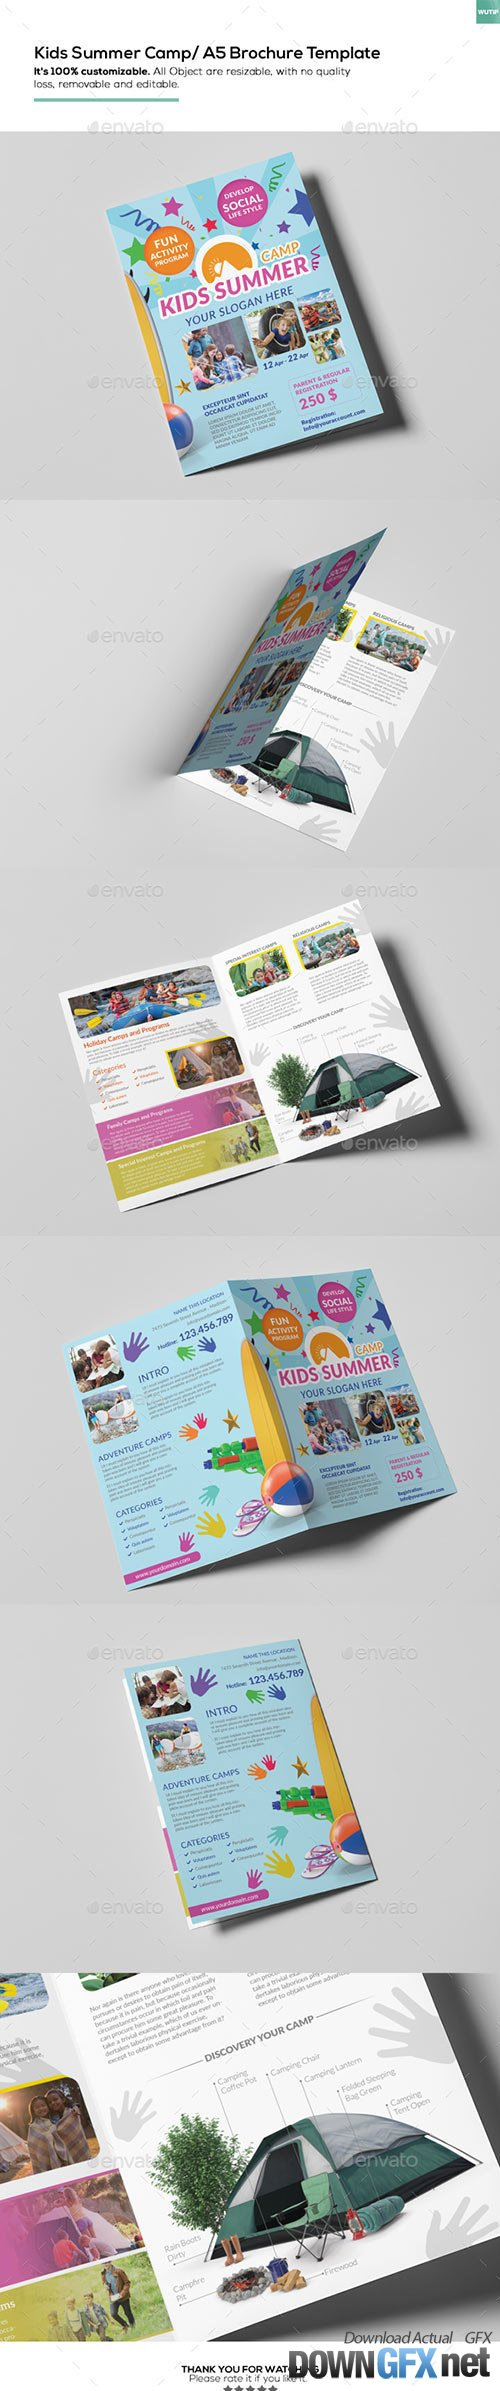 Kids Summer Camp/ A5 Brochure Template 15774830